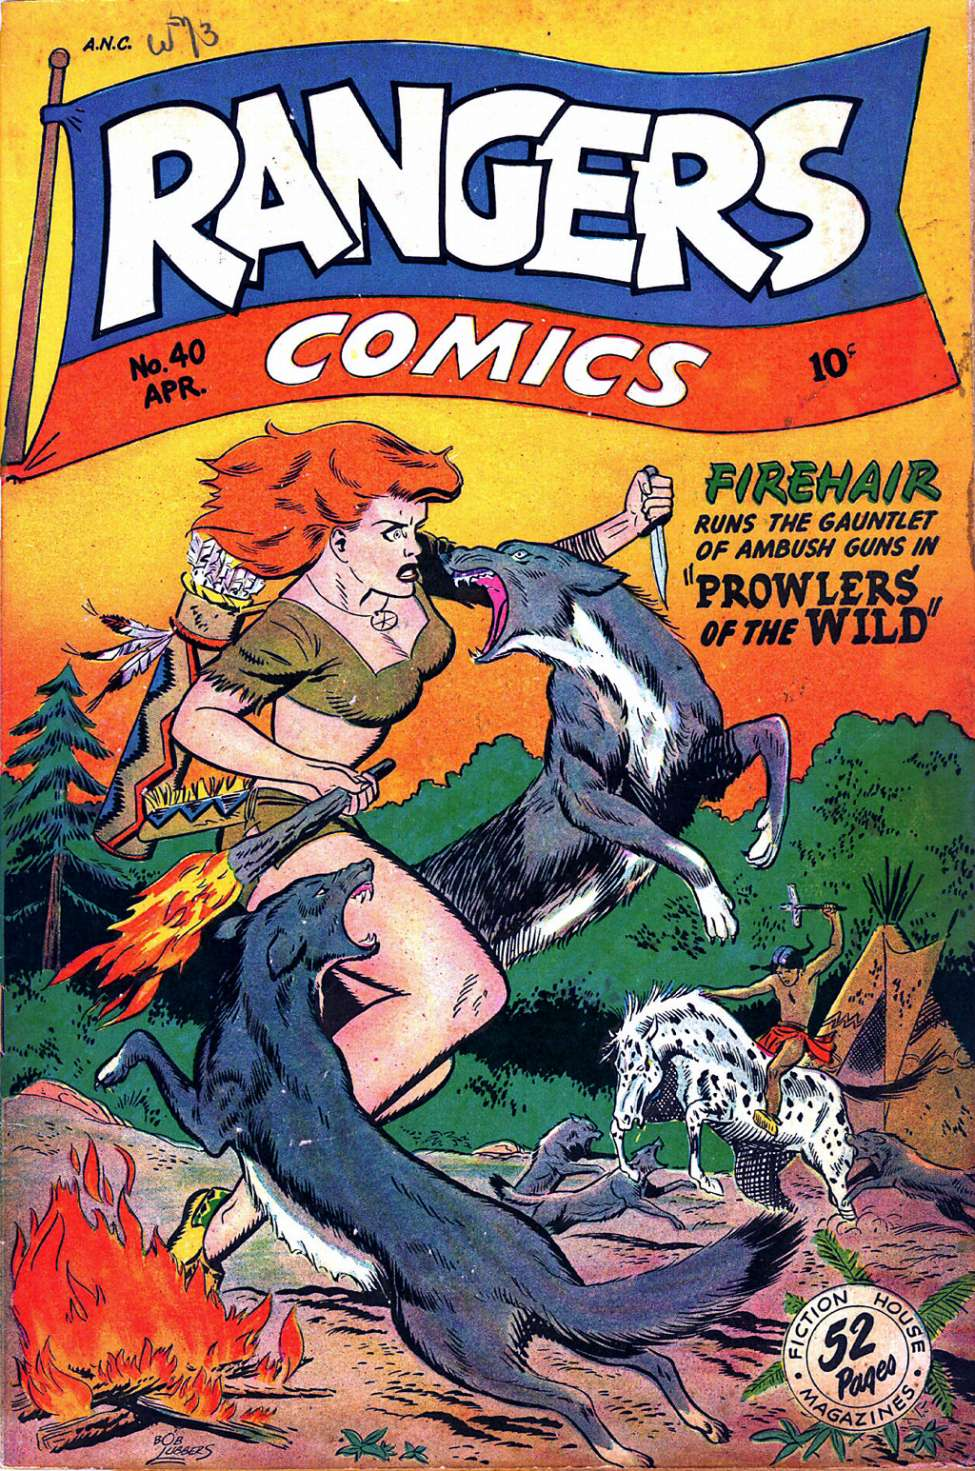 Comic Book Cover For Rangers Comics #40